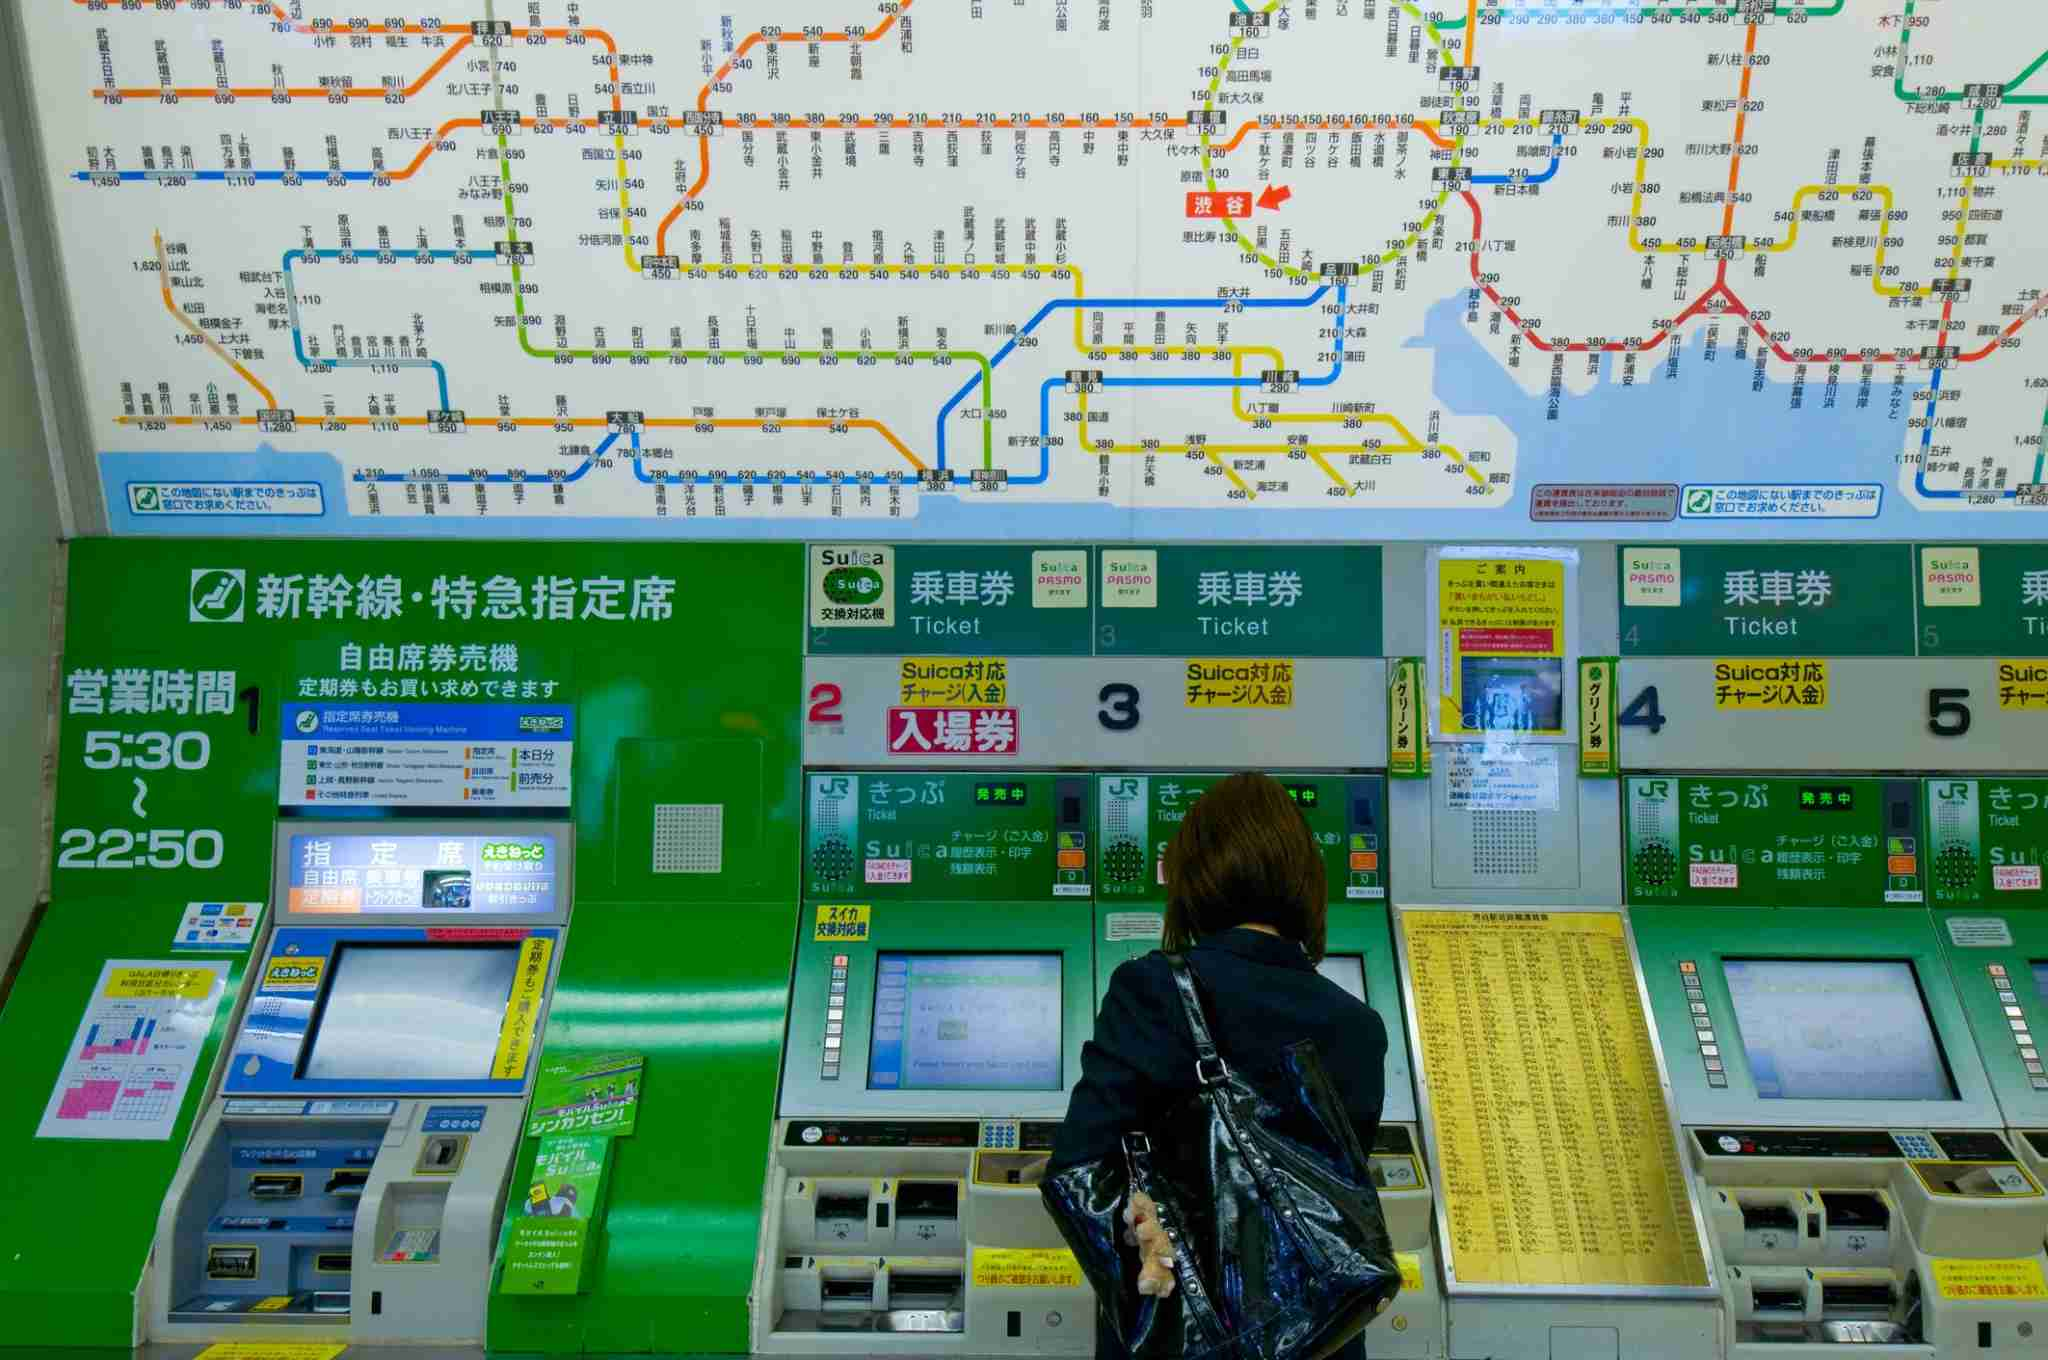 One-way tickets rule the subway lines. Image courtesy of Tom Bonaventure/Getty Images.